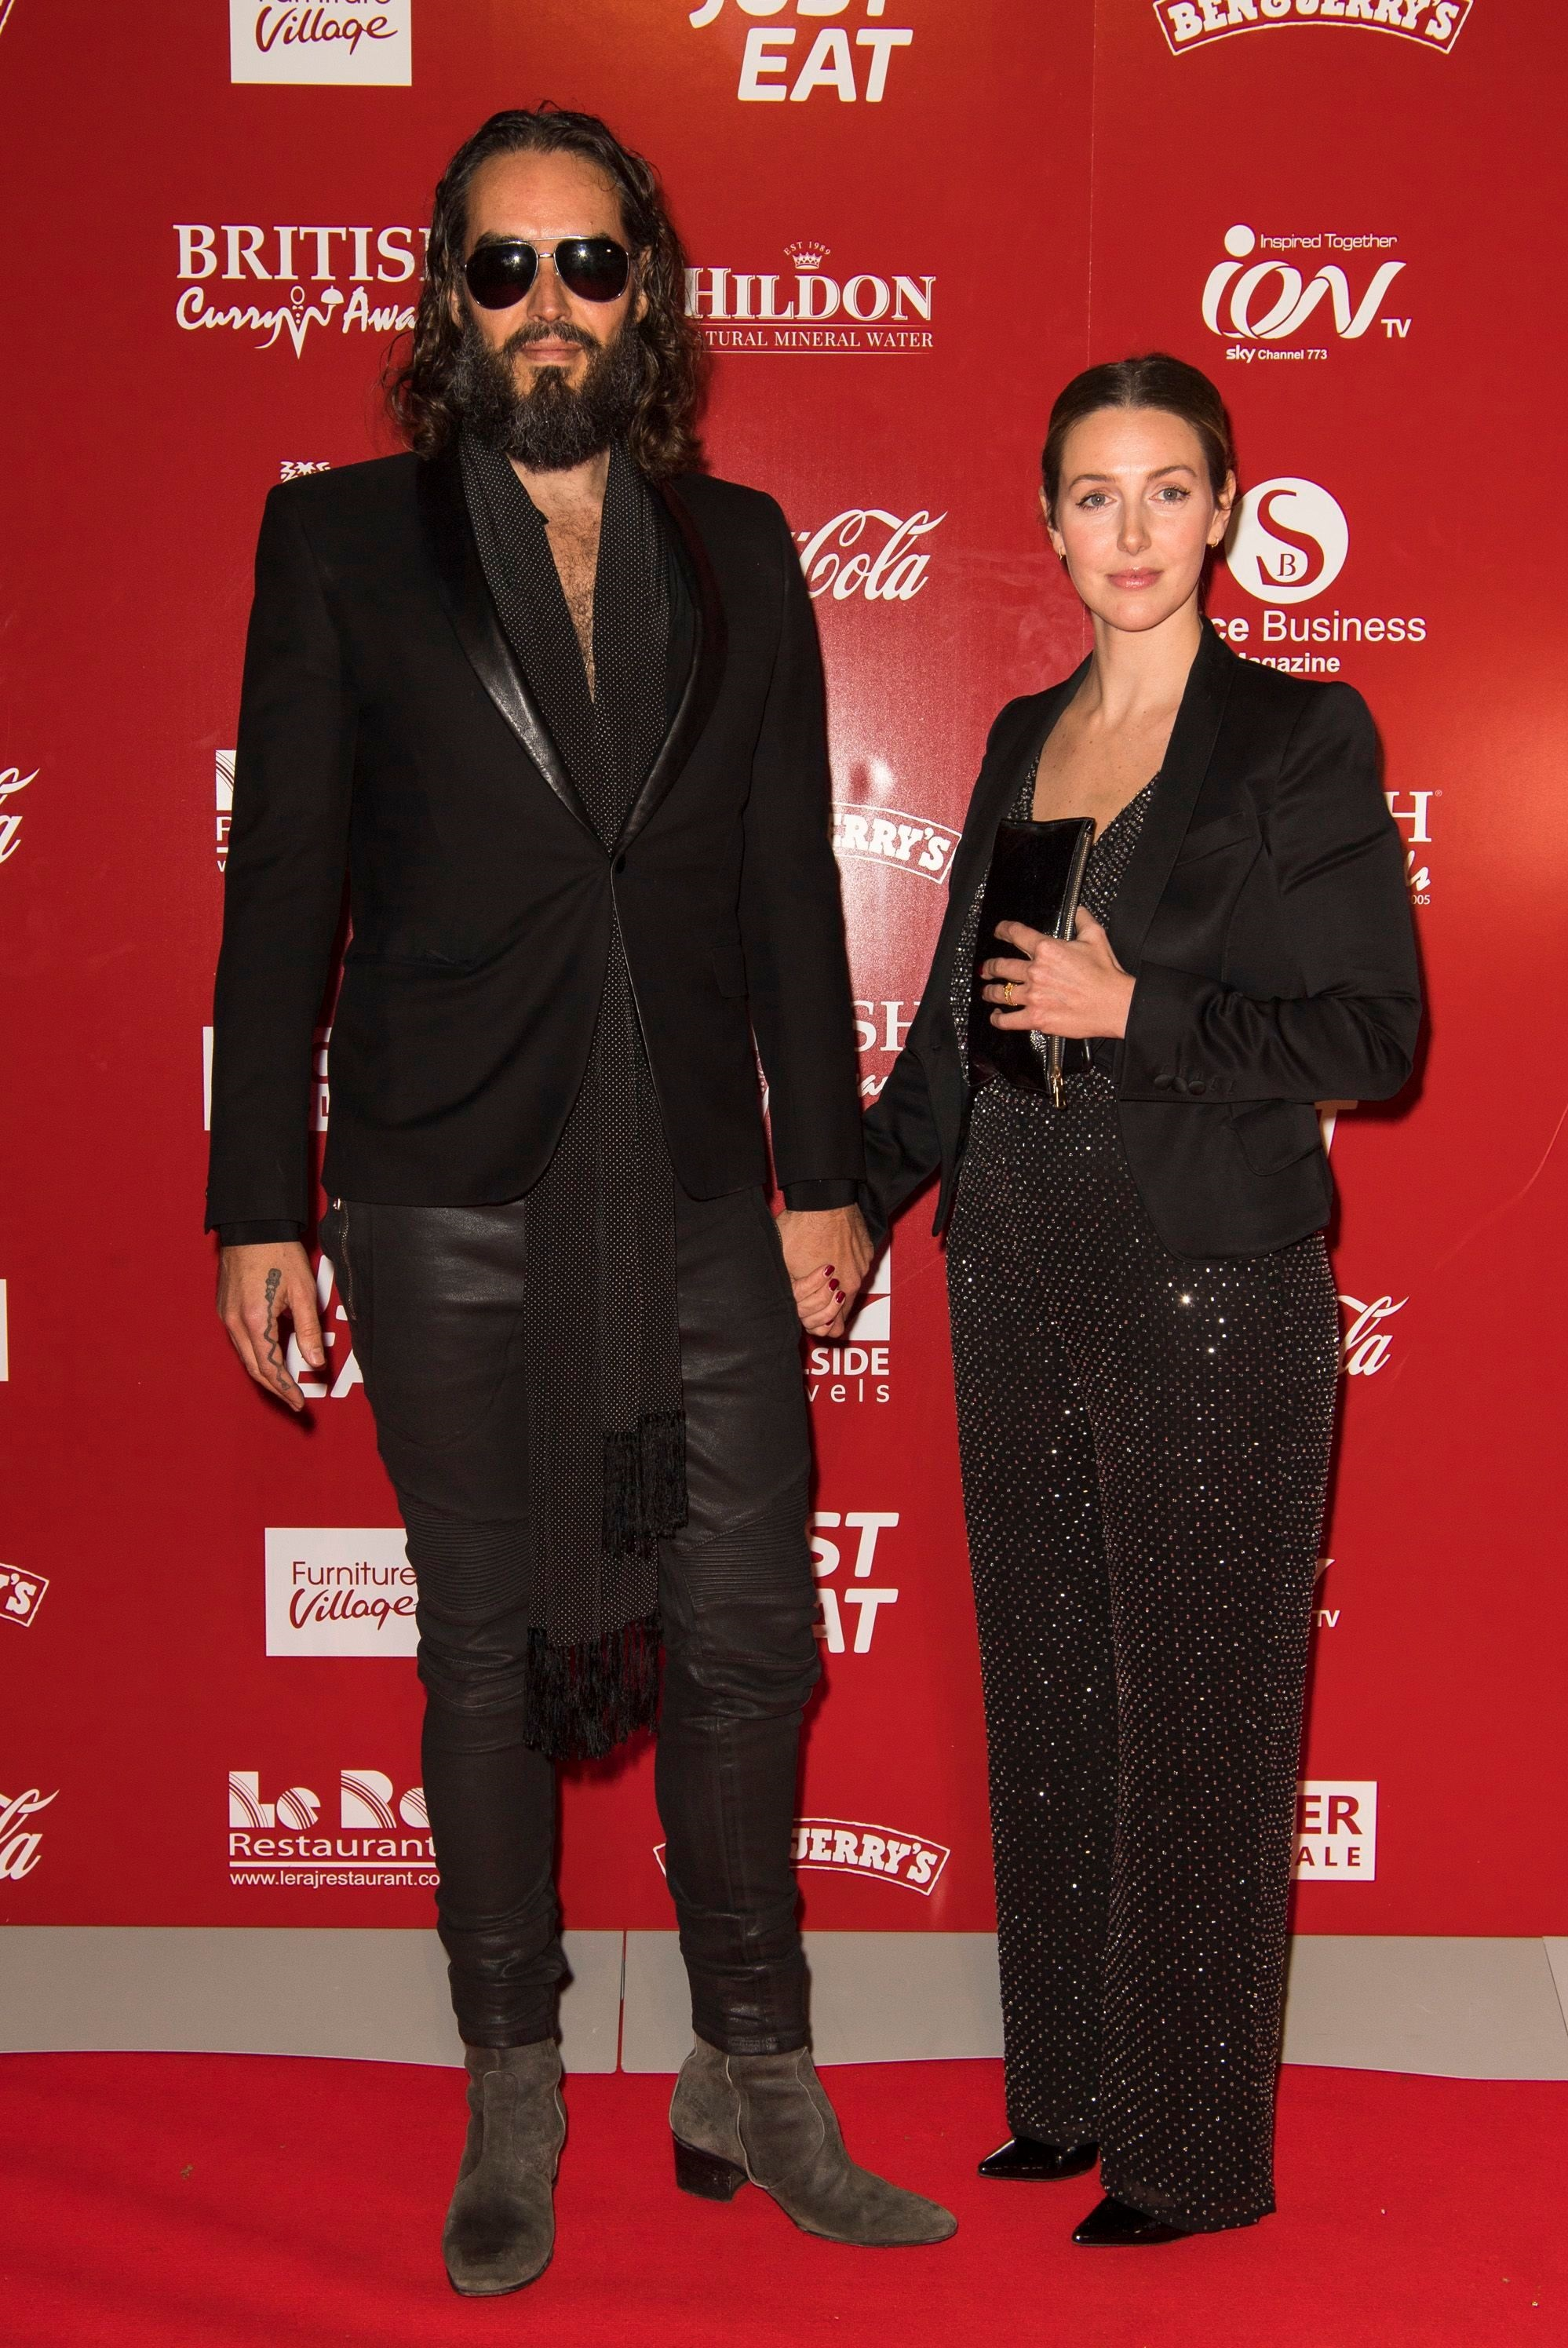 Russell Brand and Laura Gallacher